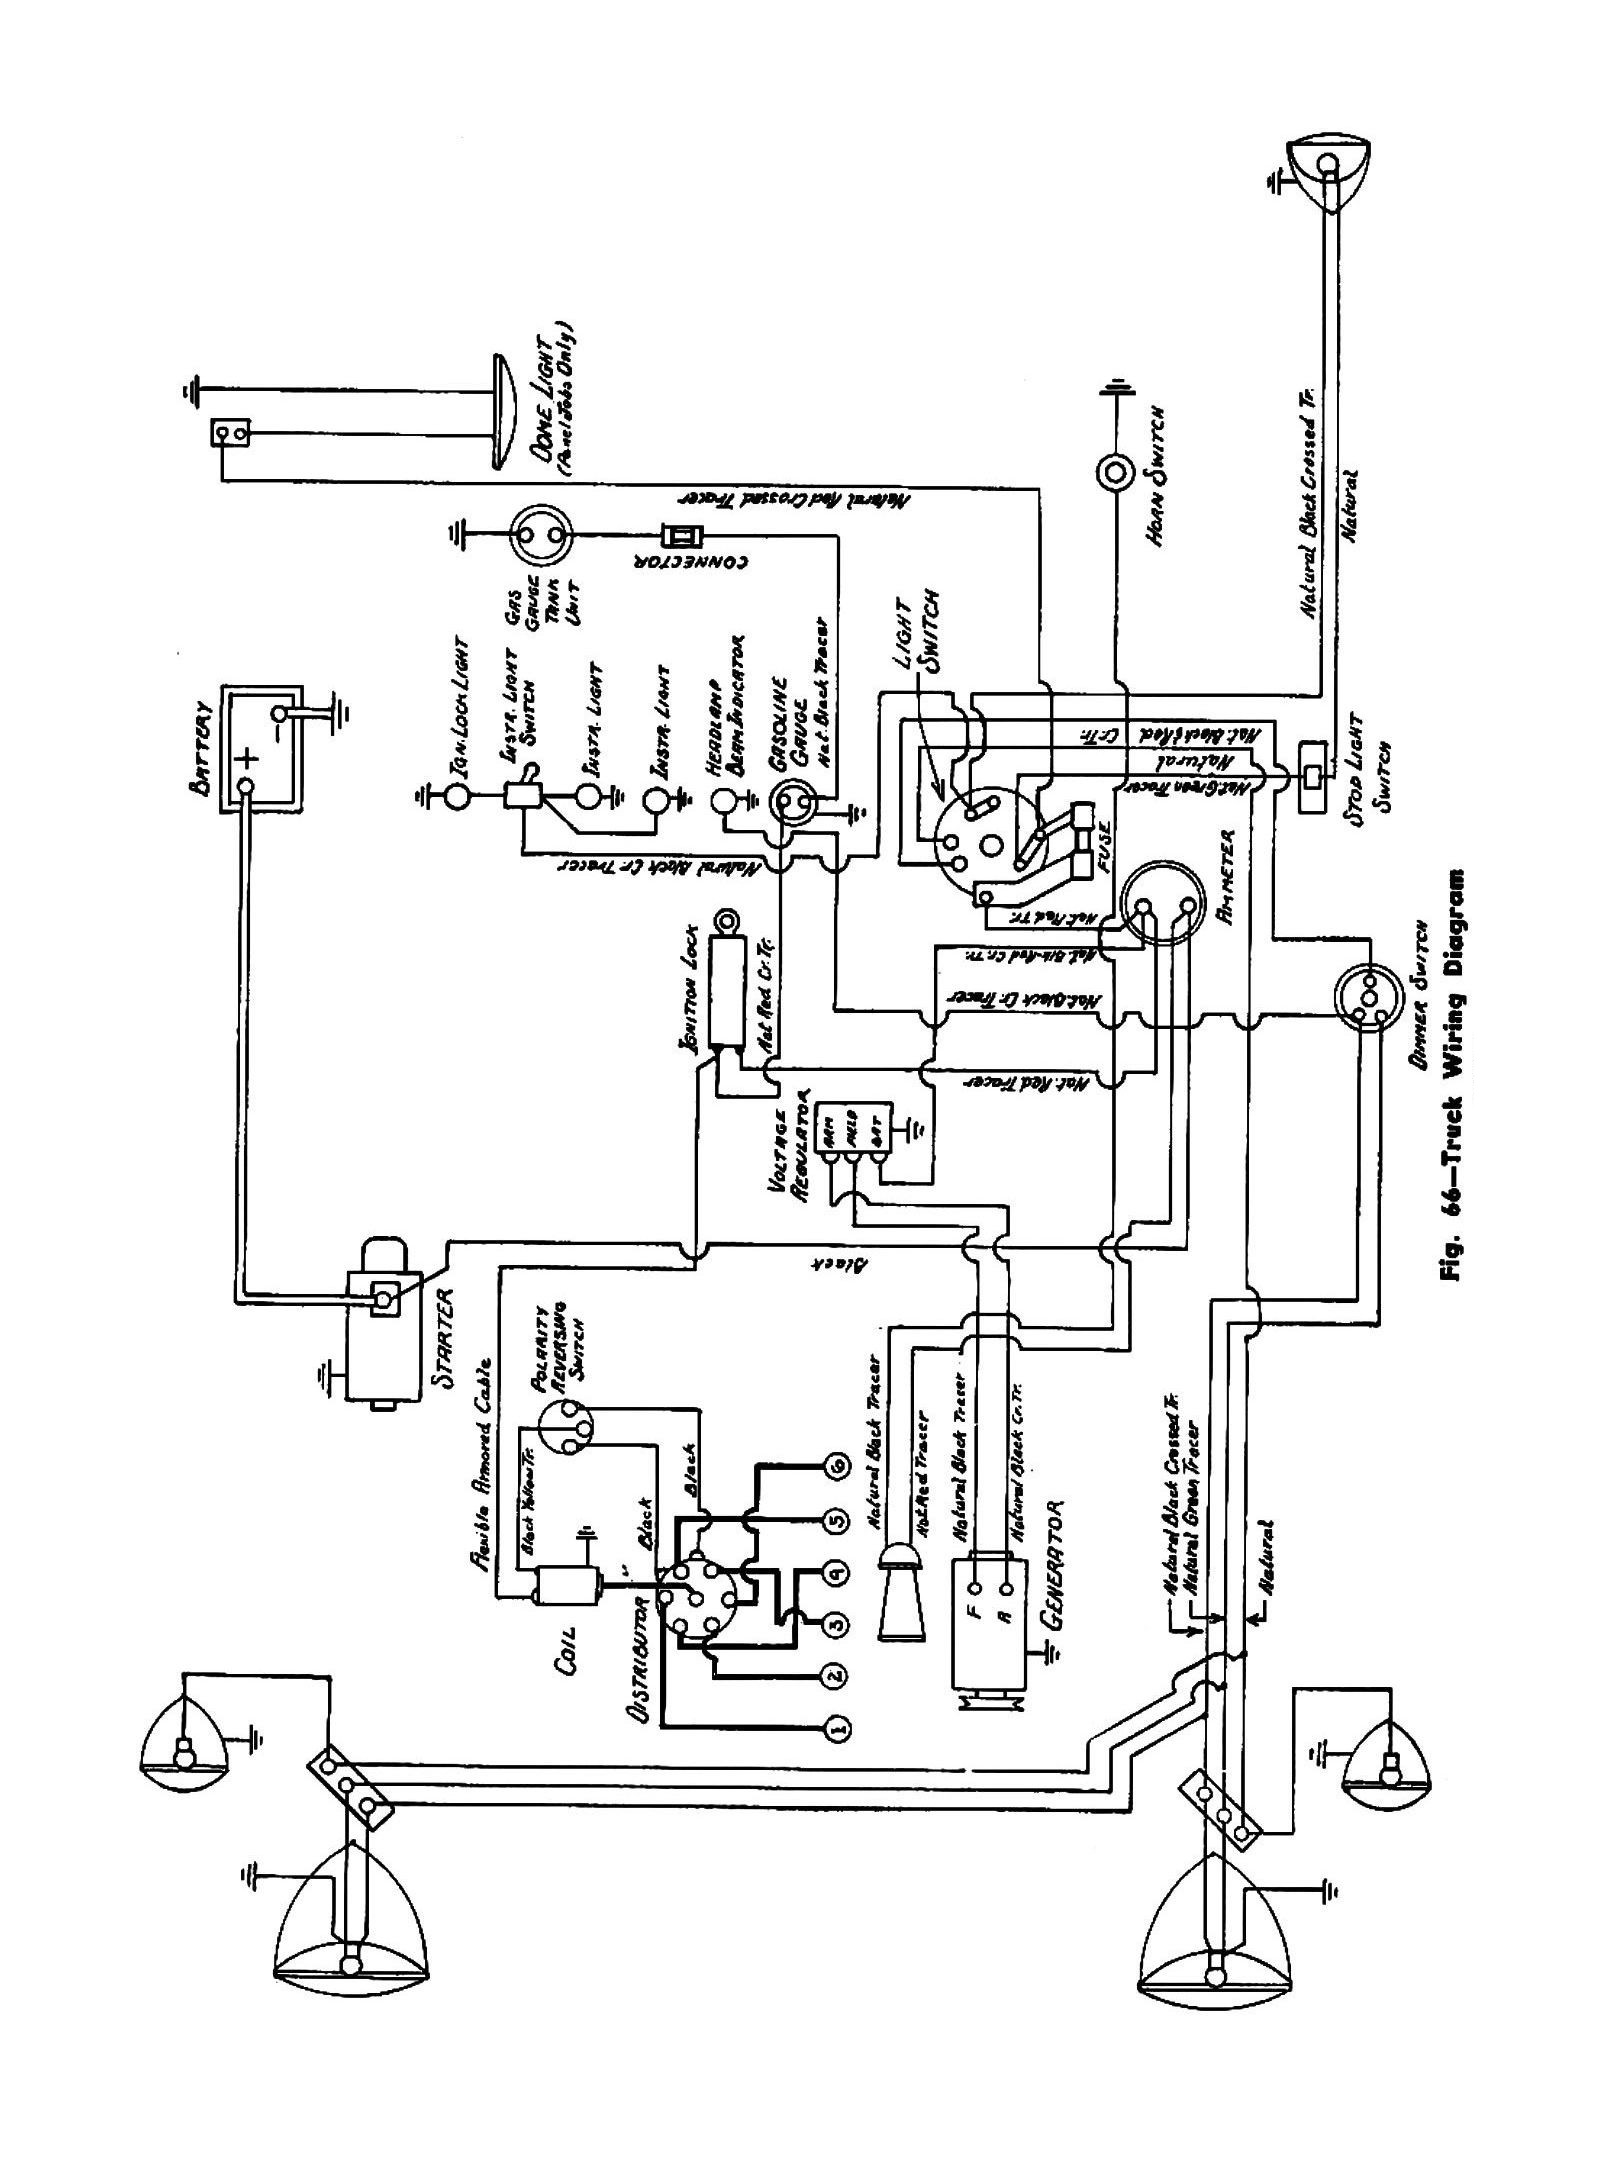 45truck chevy wiring diagrams old ford wiring harness at gsmportal.co